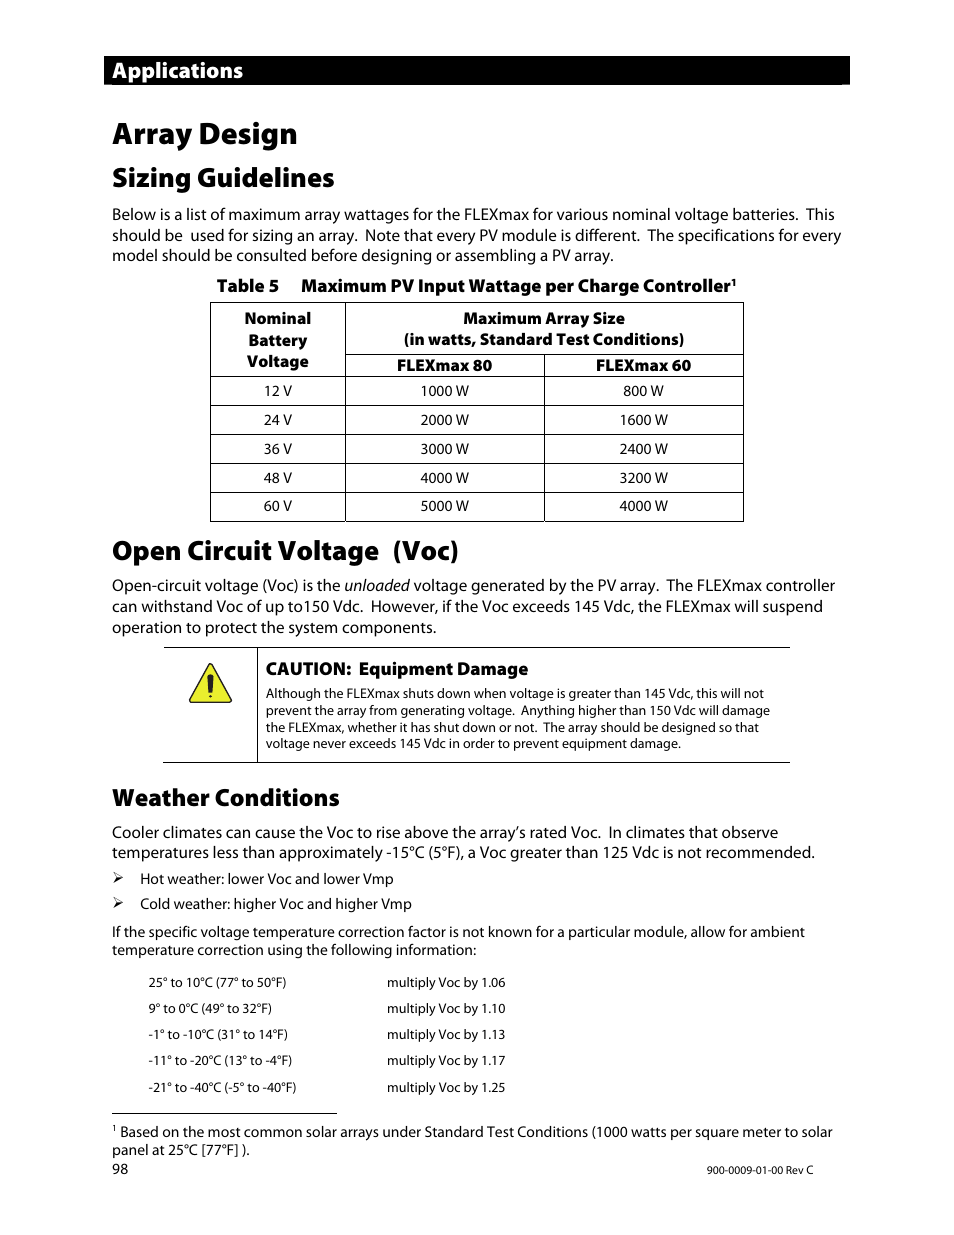 Array design, Sizing guidelines, Open circuit voltage